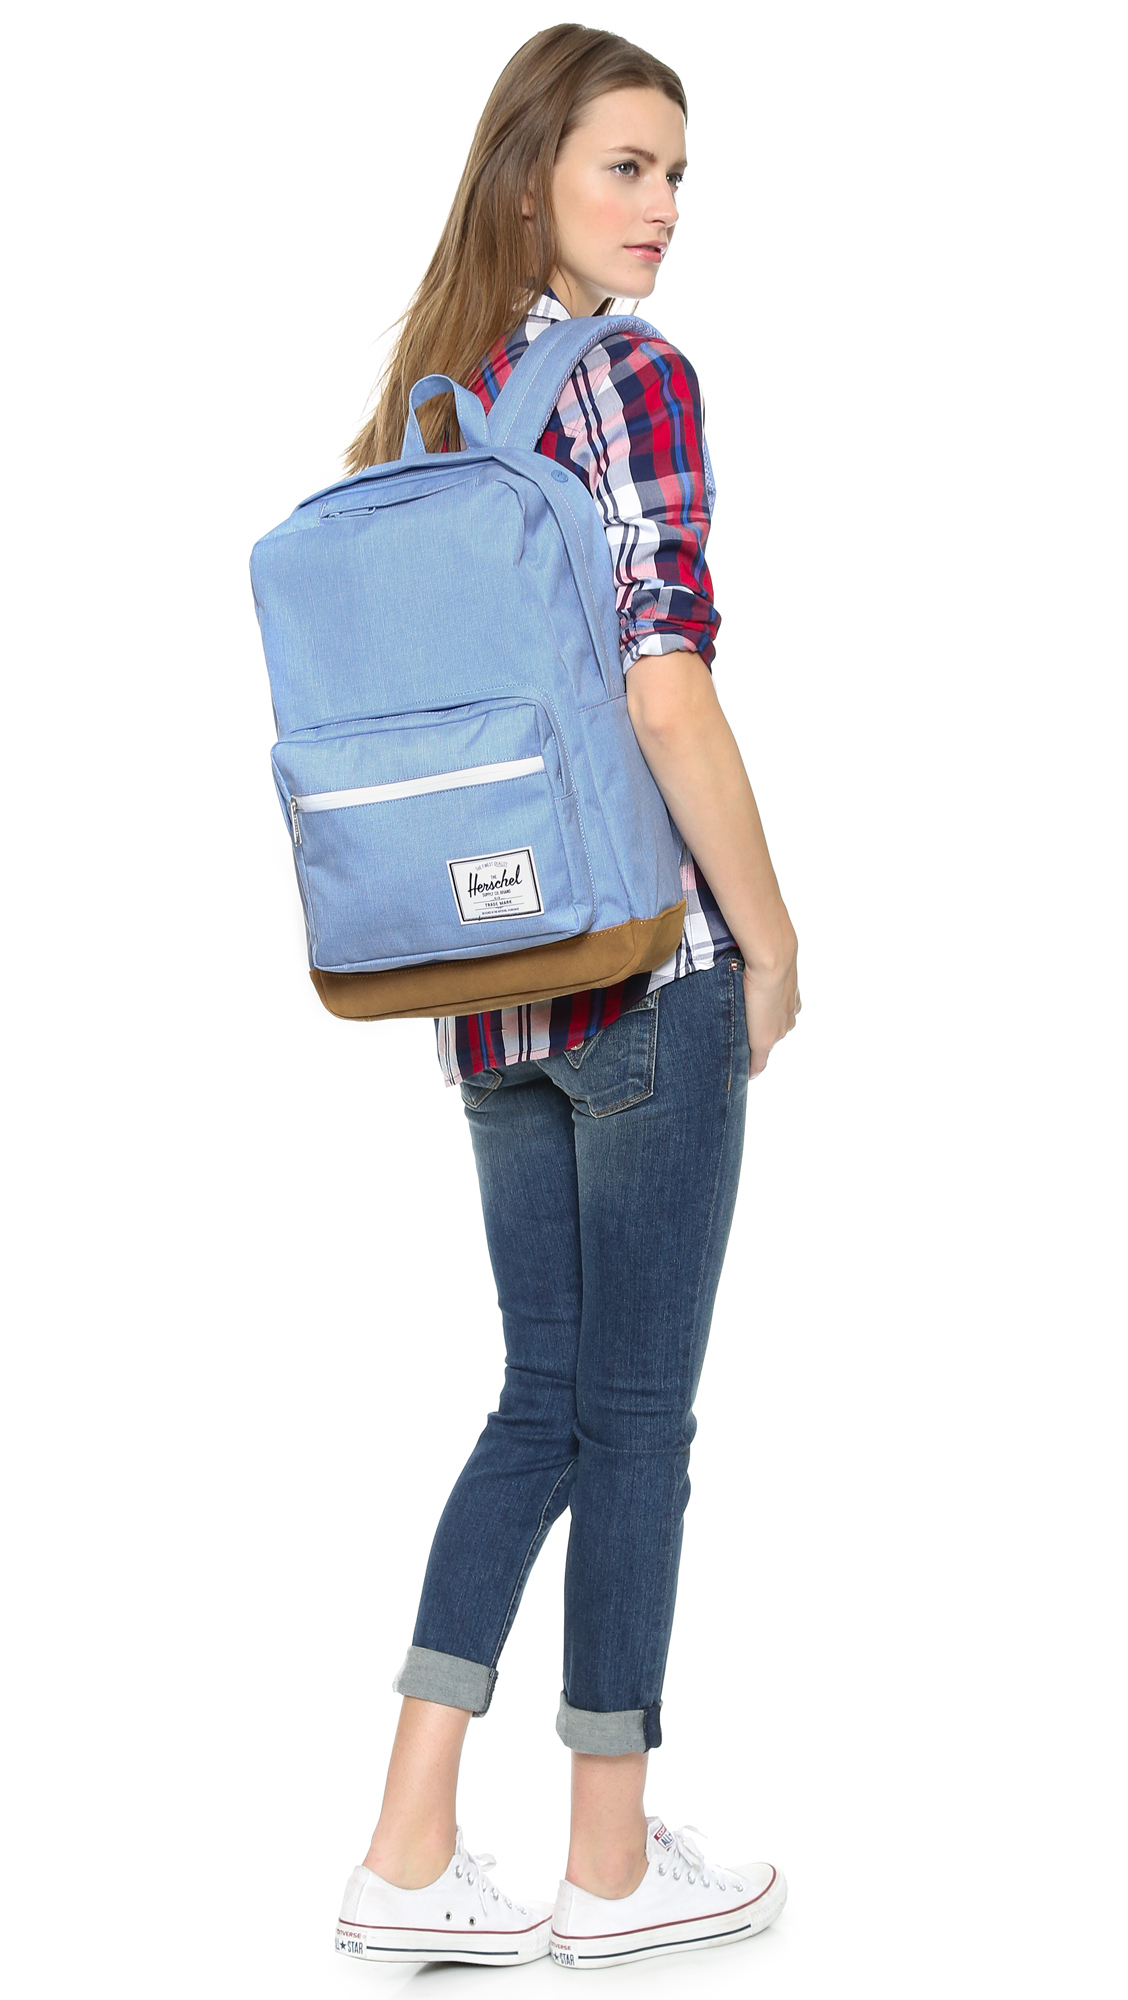 86bb9a29a2c Lyst - Herschel Supply Co. Pop Quiz Backpack - Chambray in Blue